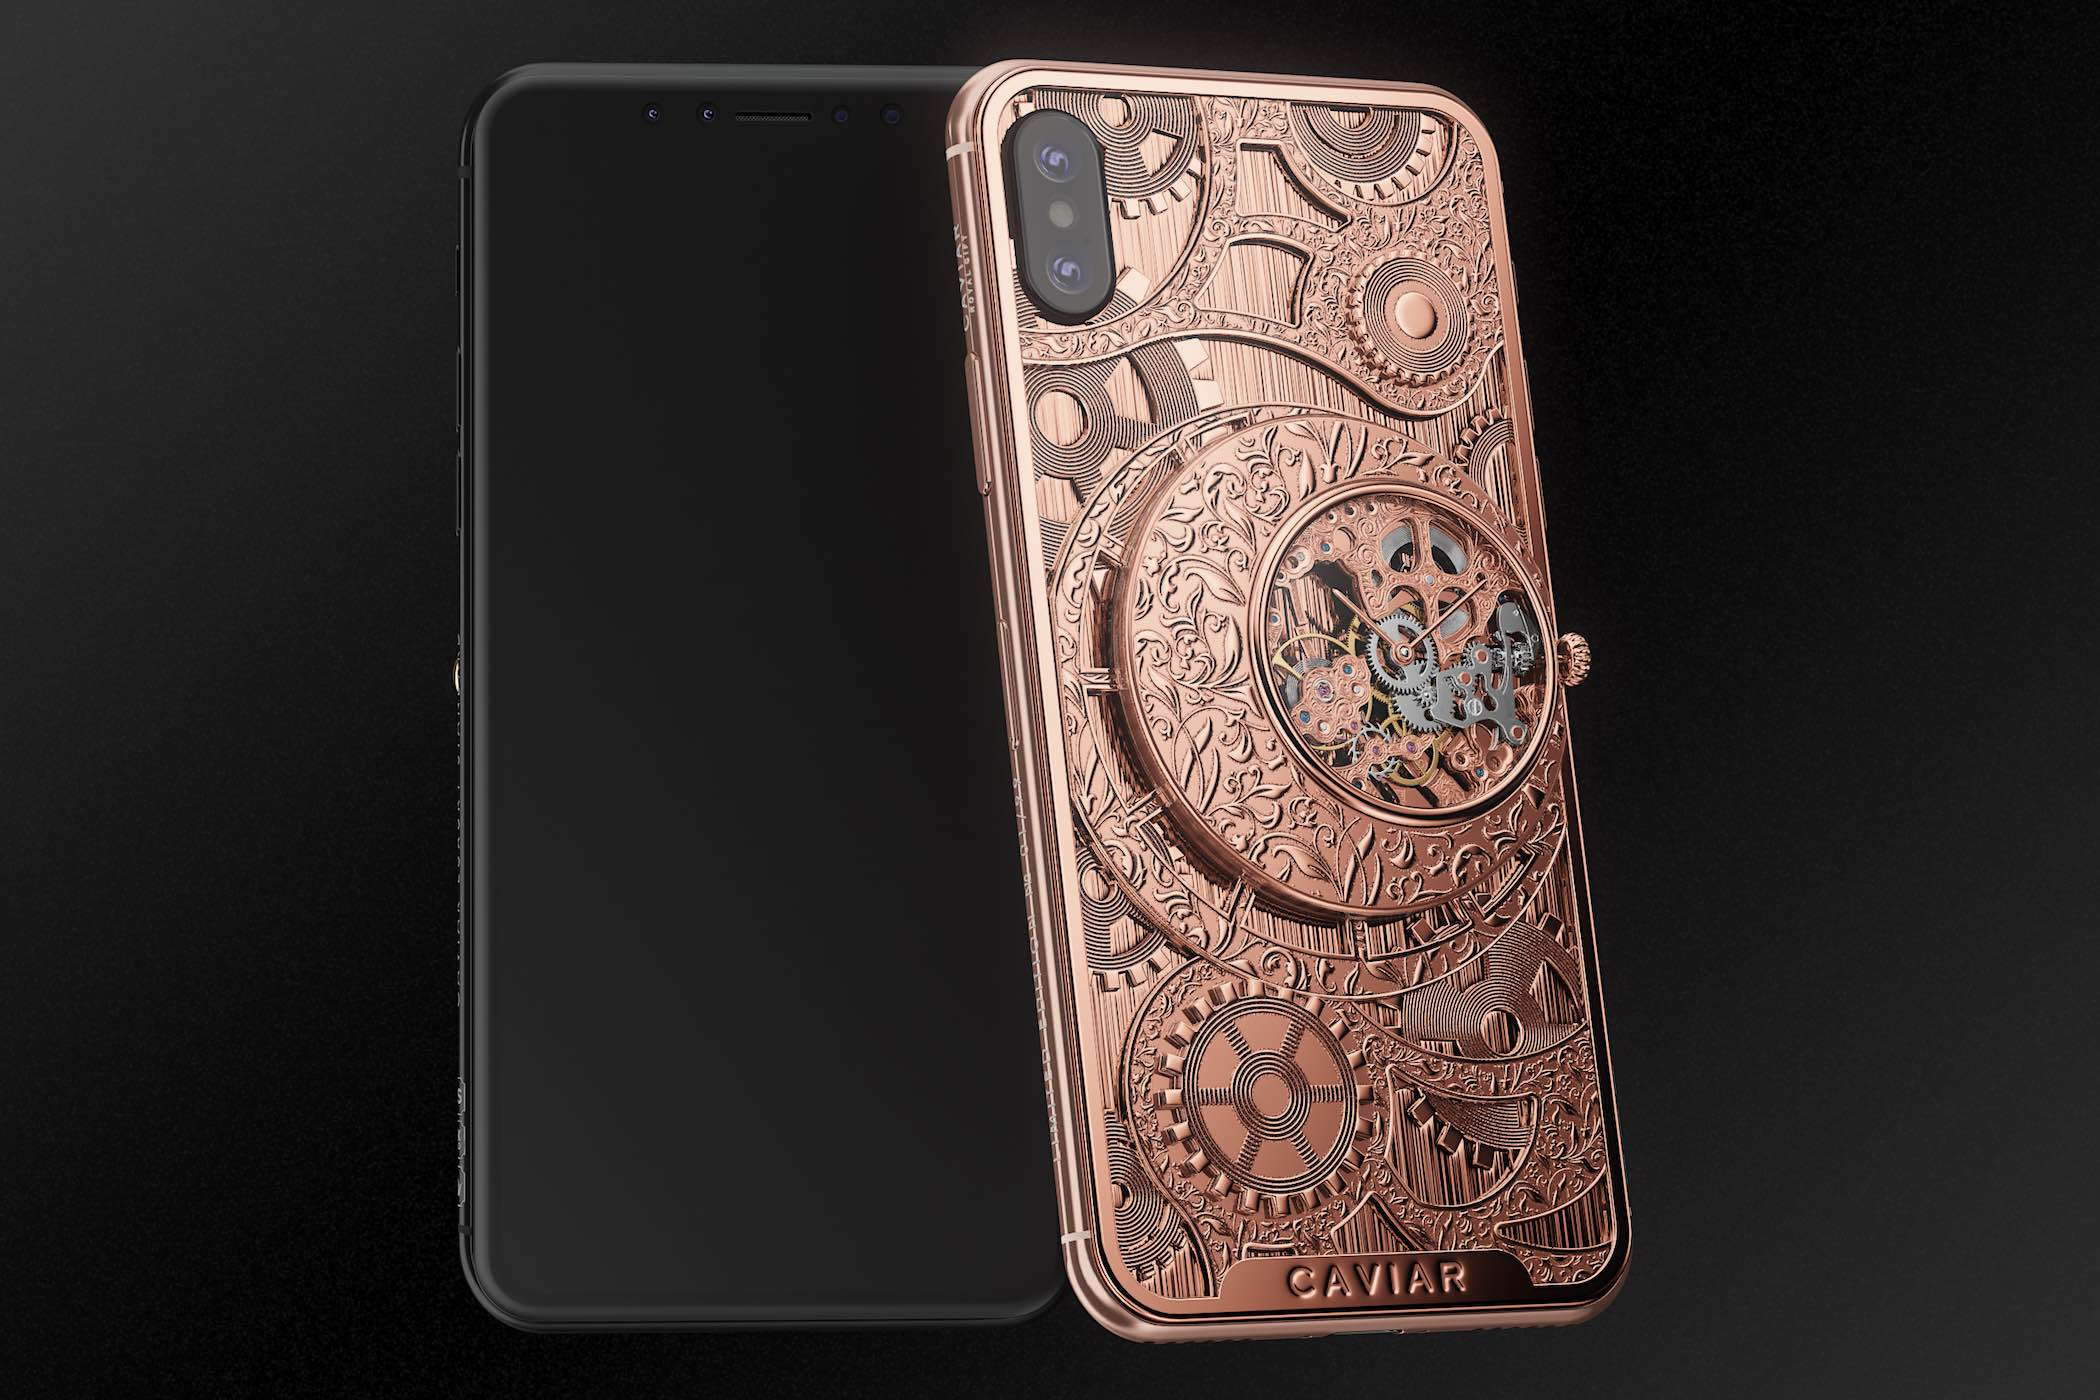 Caviar iPhone XS Grand Complications Skeleton - 1